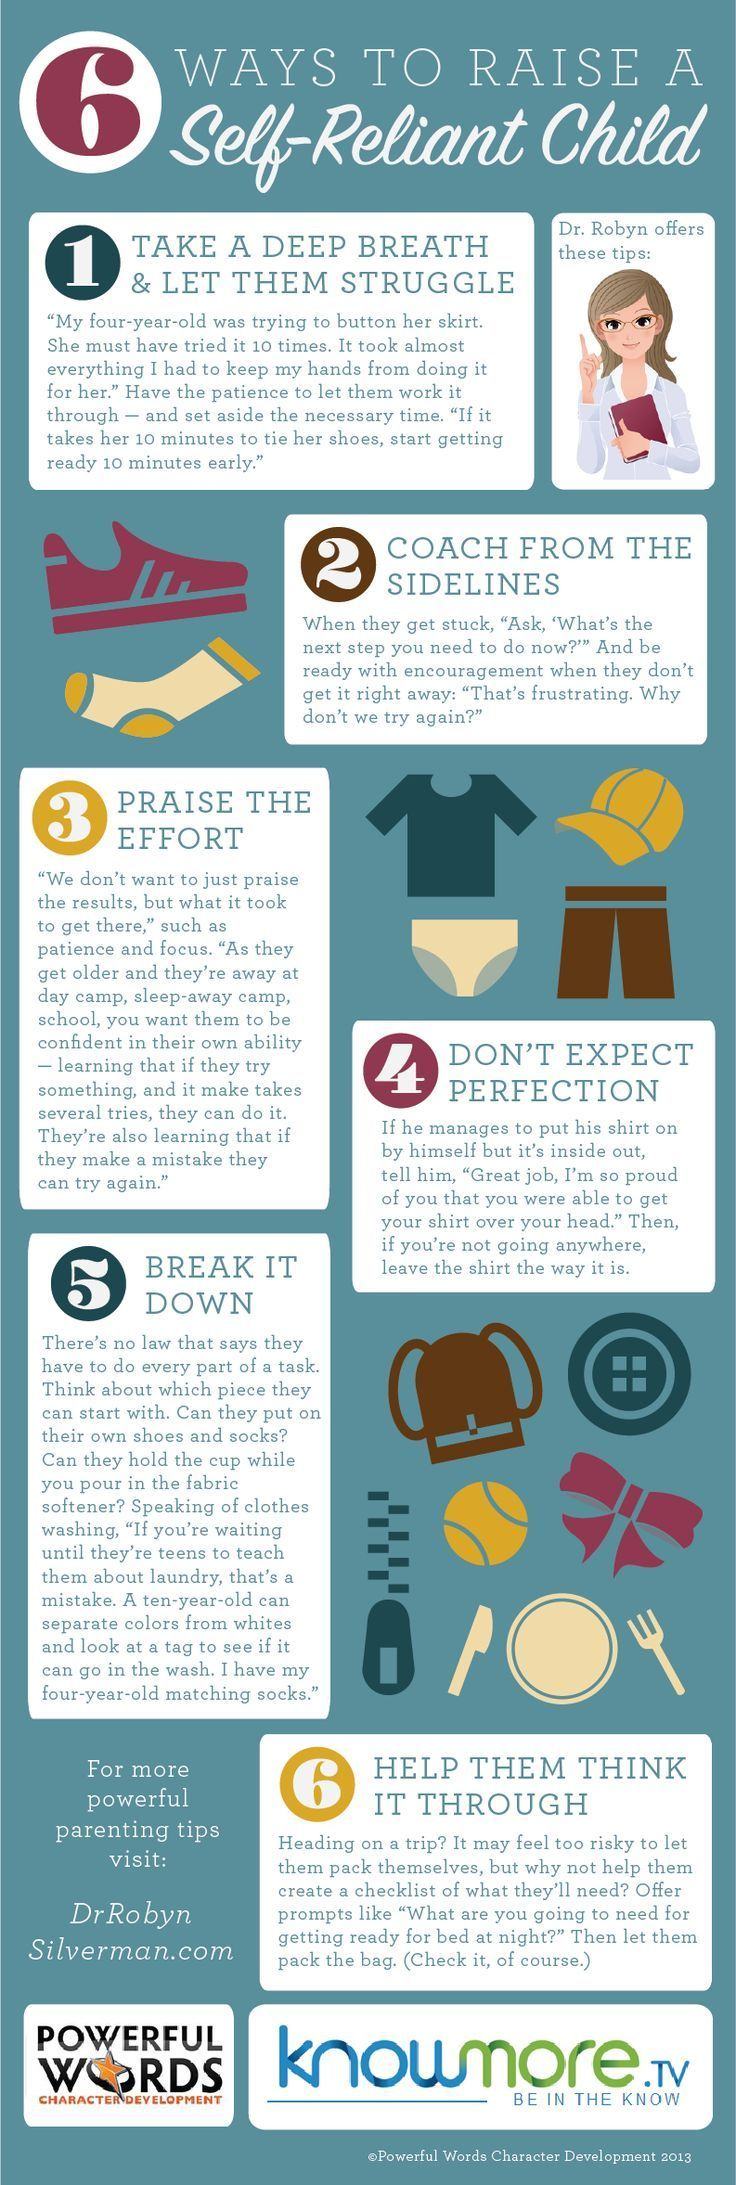 How to raise a self reliant child - Click for the article at @KnowMore TV and for more #Parenting tips visit www.drrobynsilver... #Infographic knowmore.tv/...